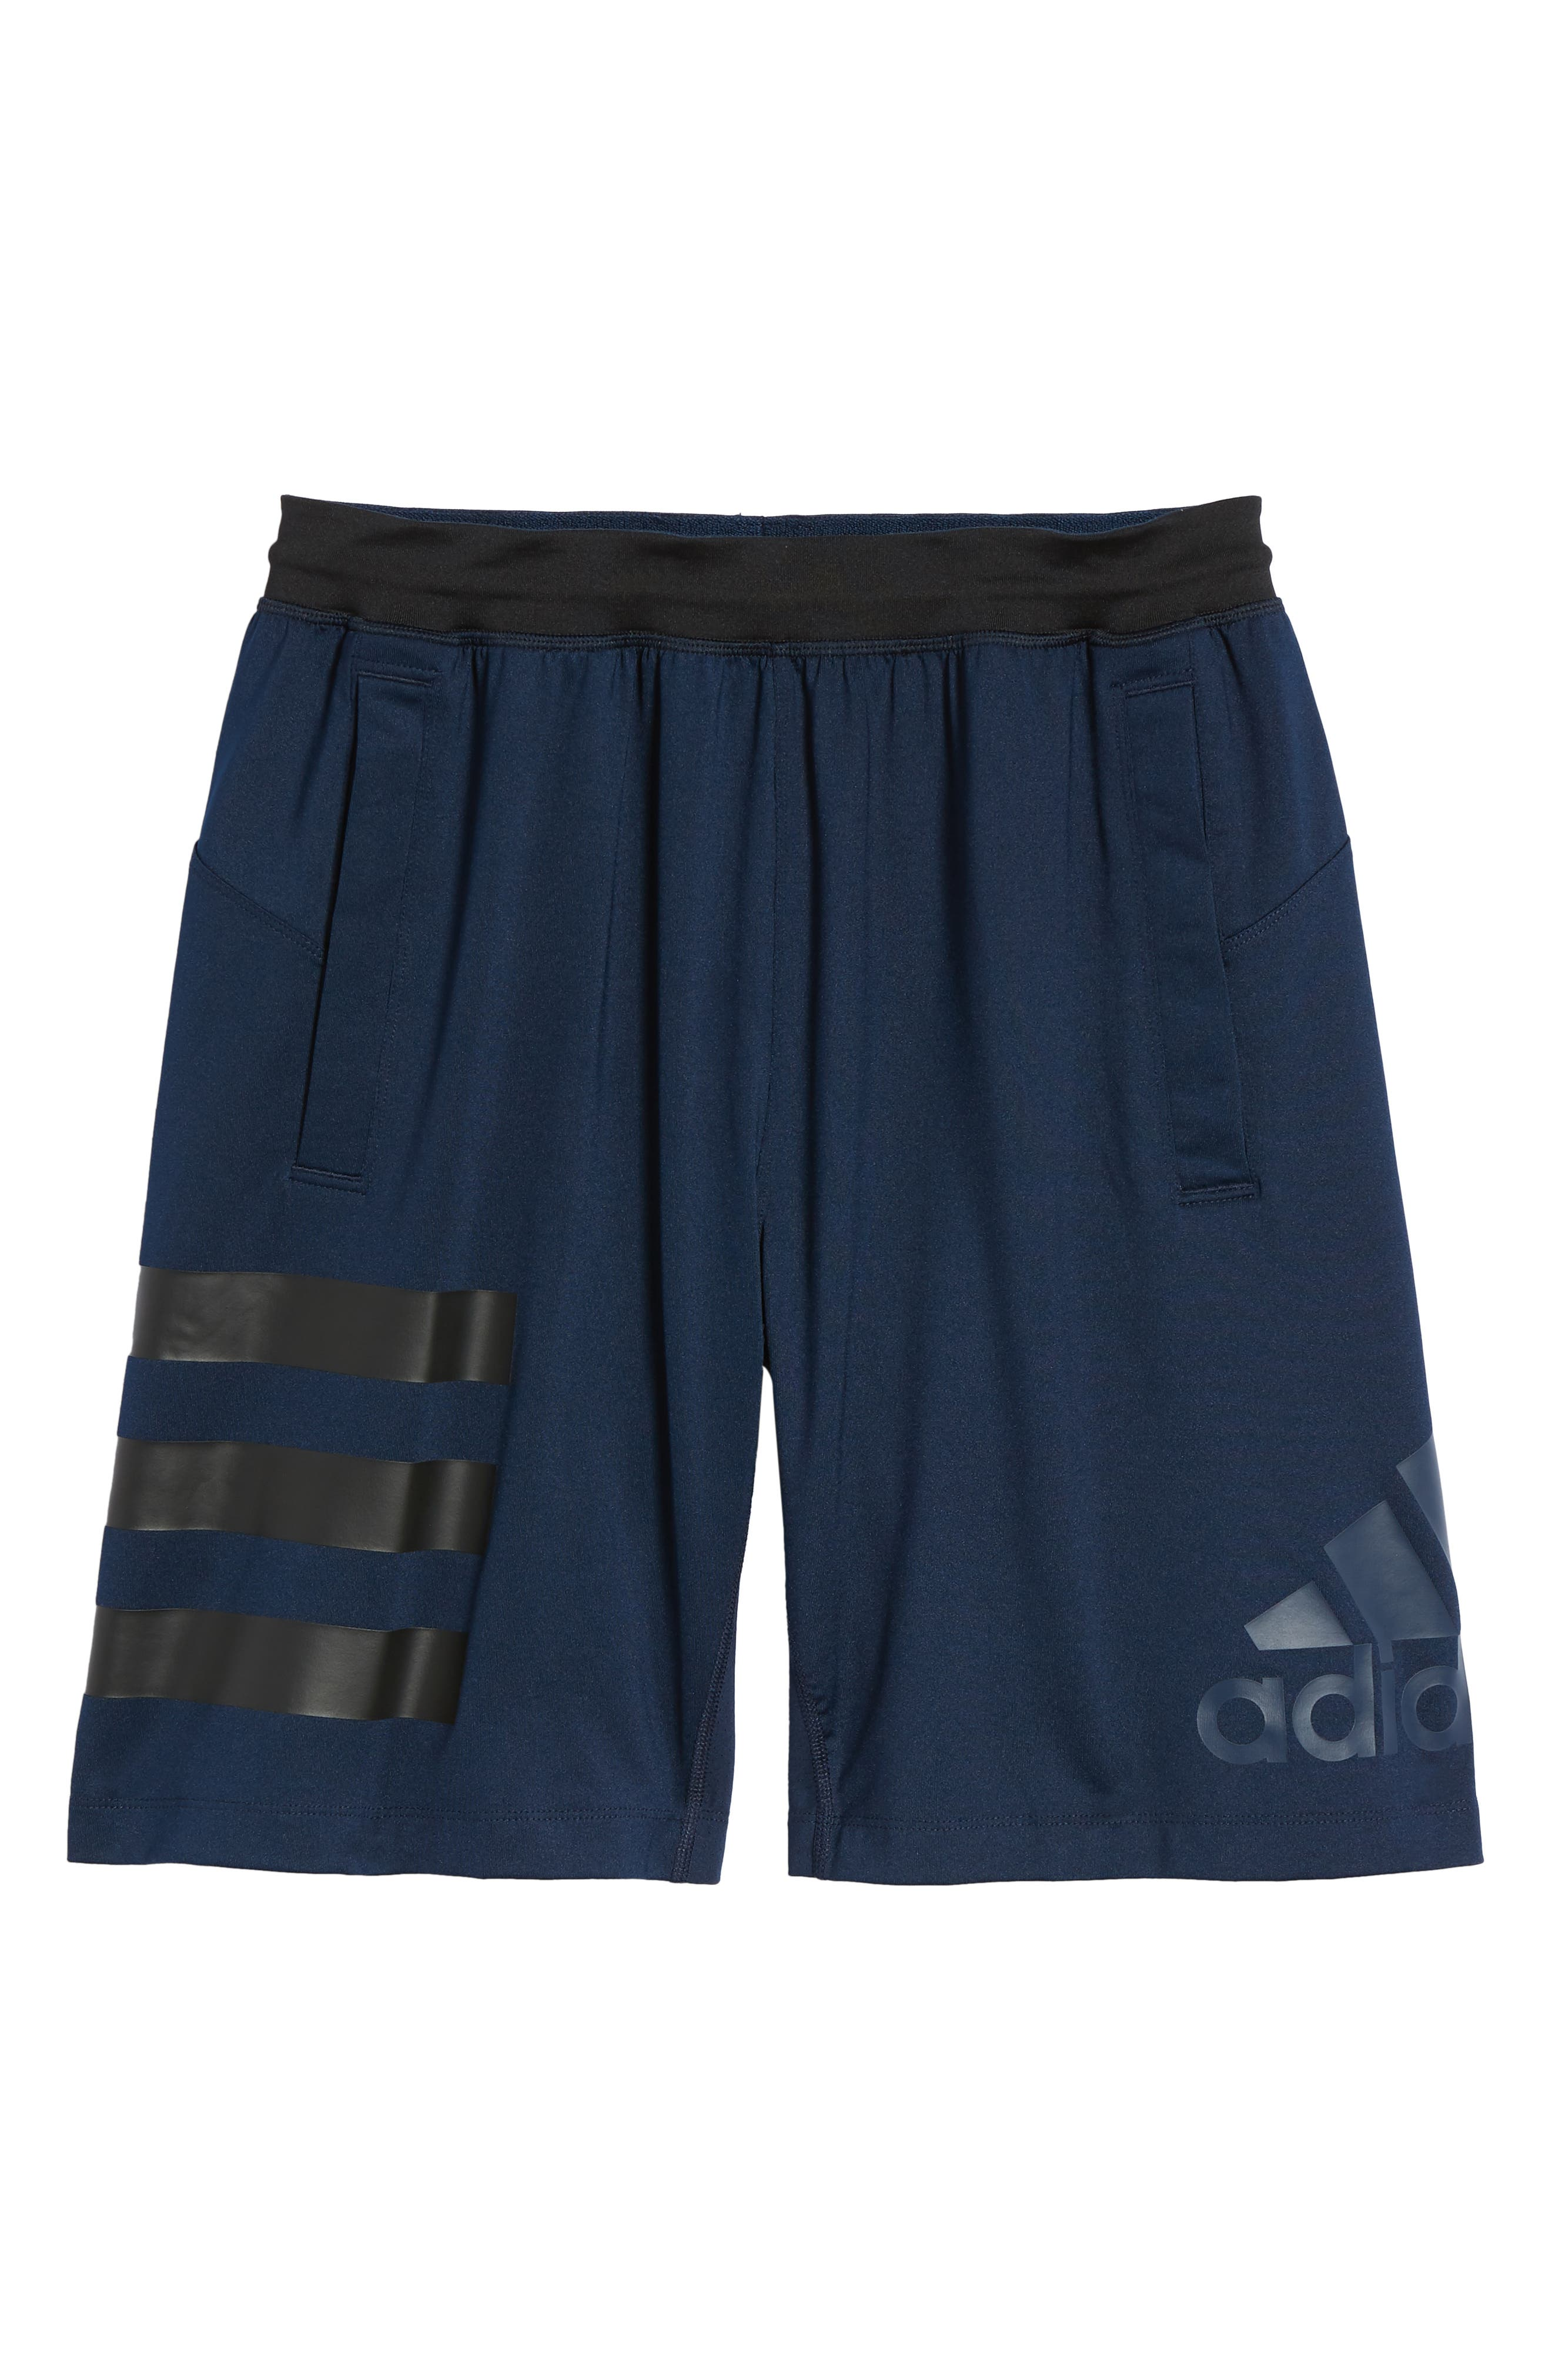 SB Hype Icon Shorts,                             Alternate thumbnail 6, color,                             COLLEGIATE NAVY/ BLACK